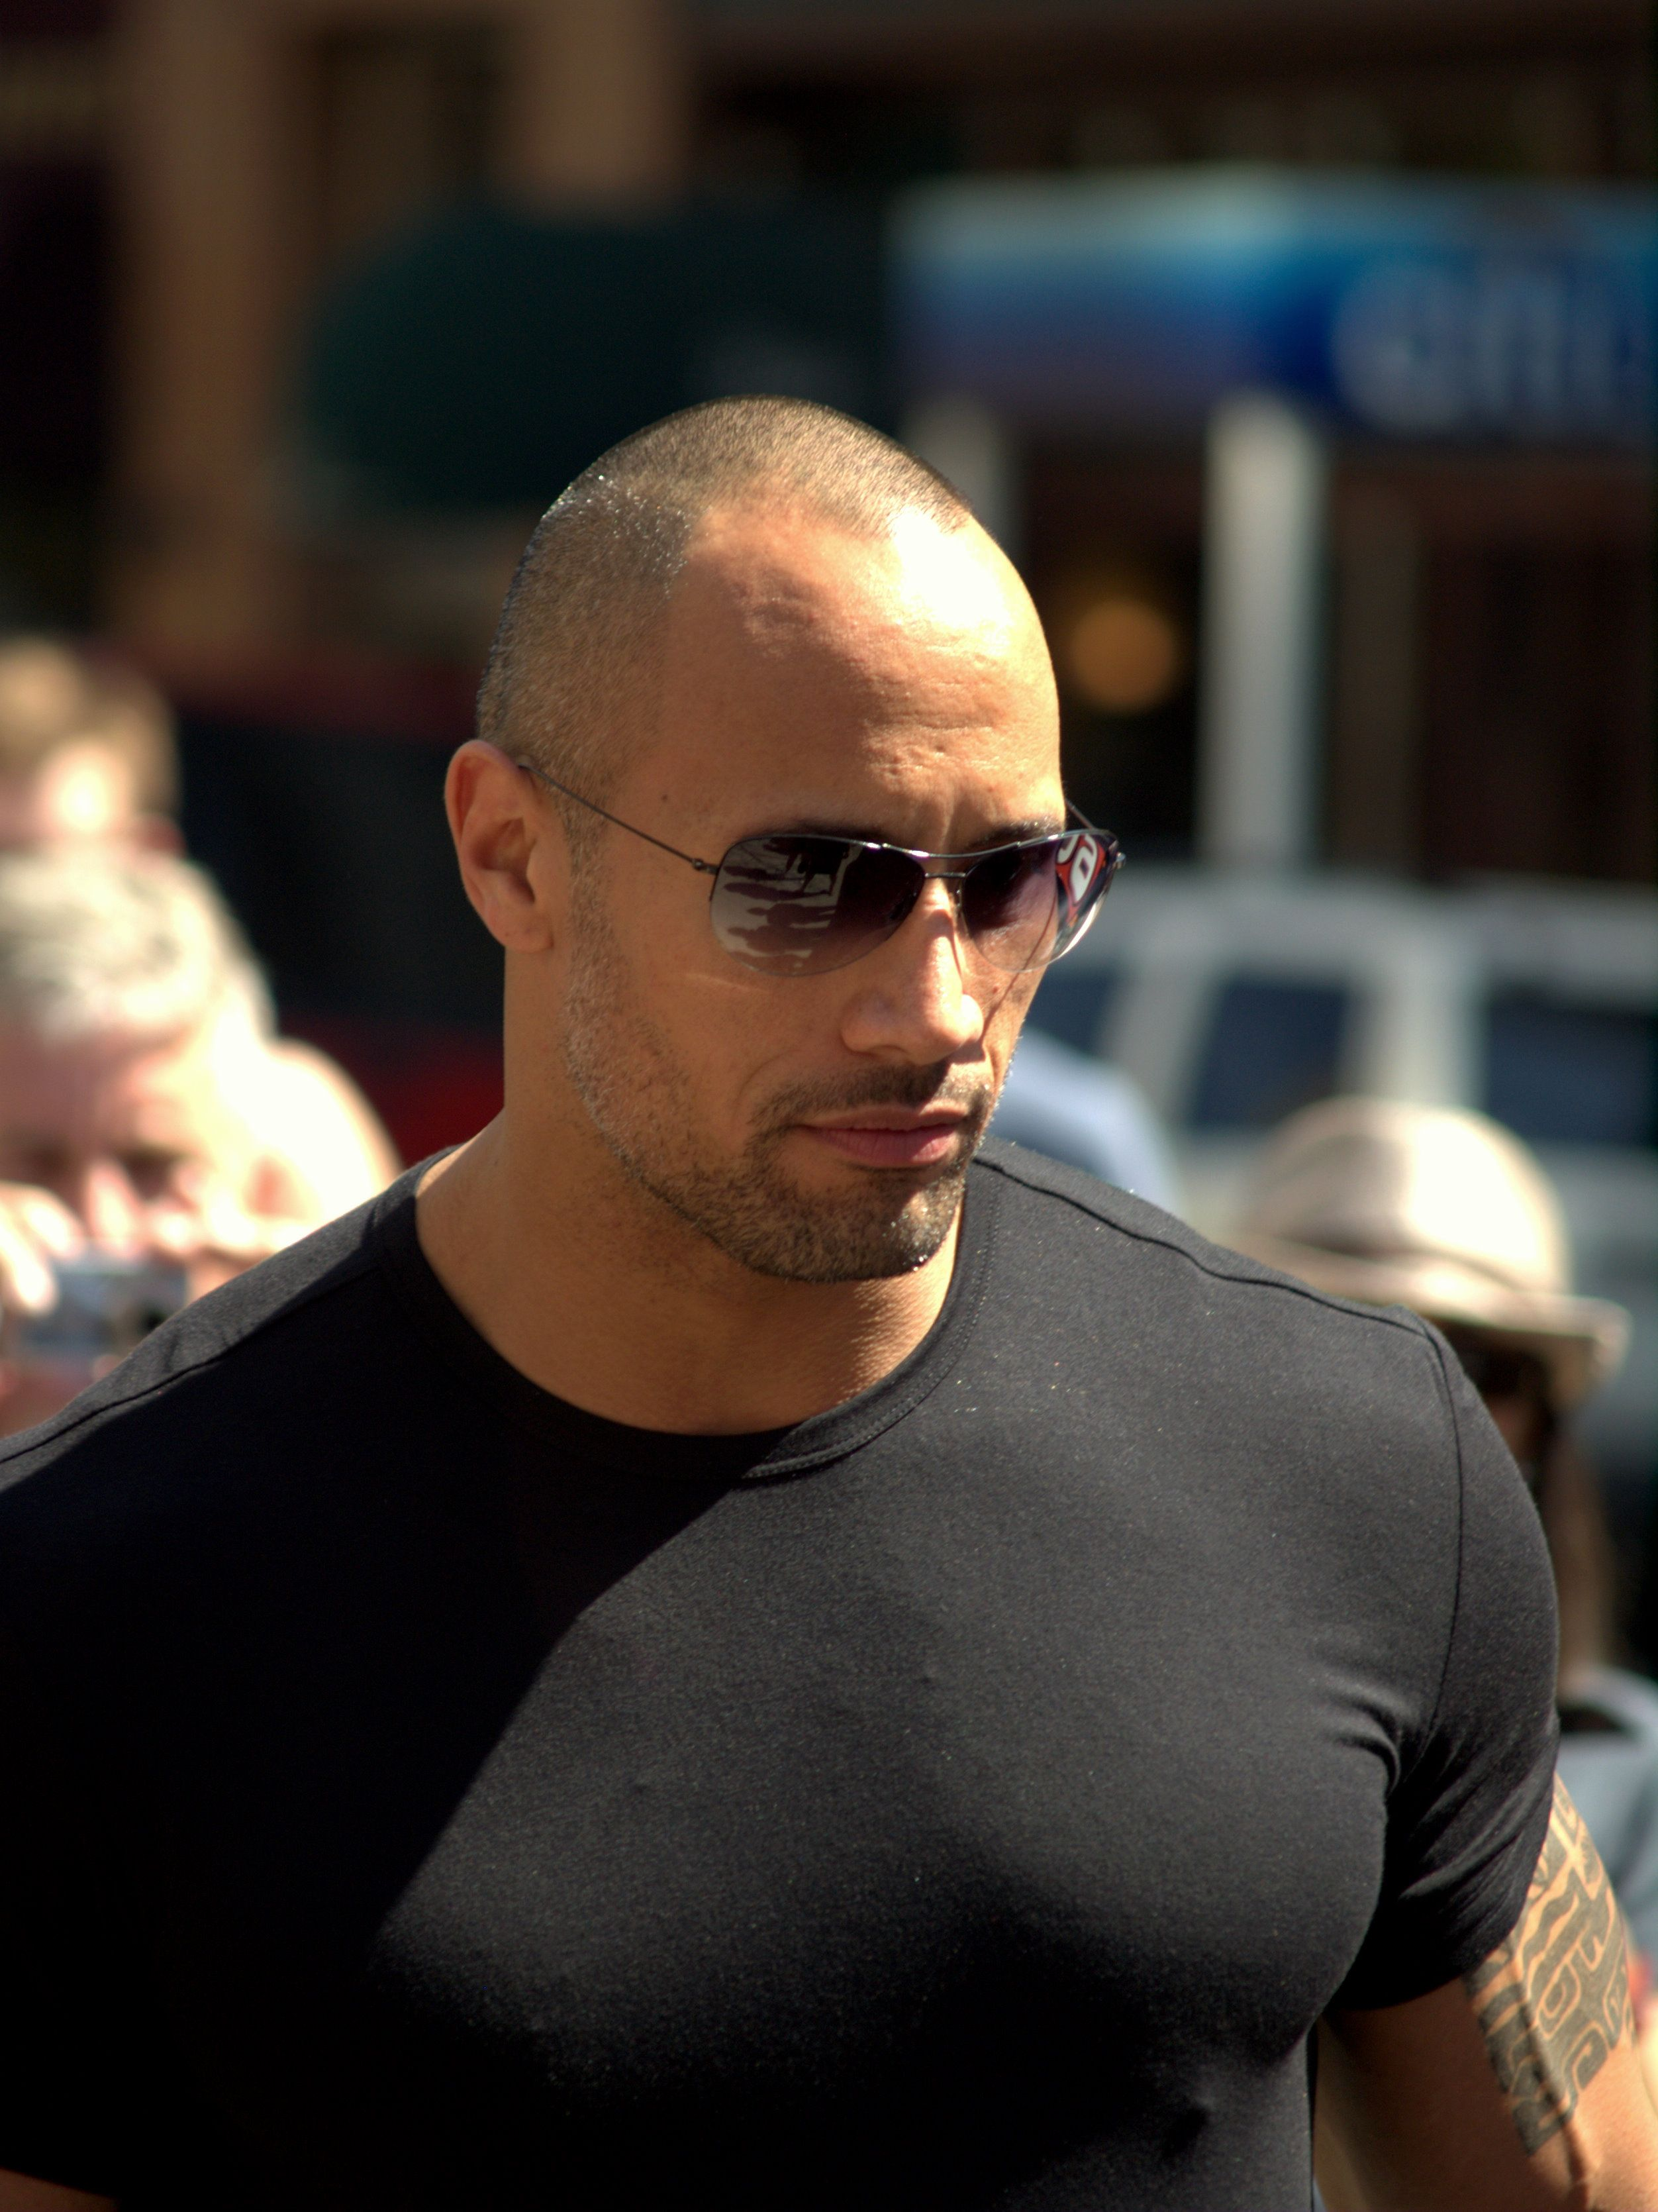 Dwayne the rock johnson is the world s highest paid actor http